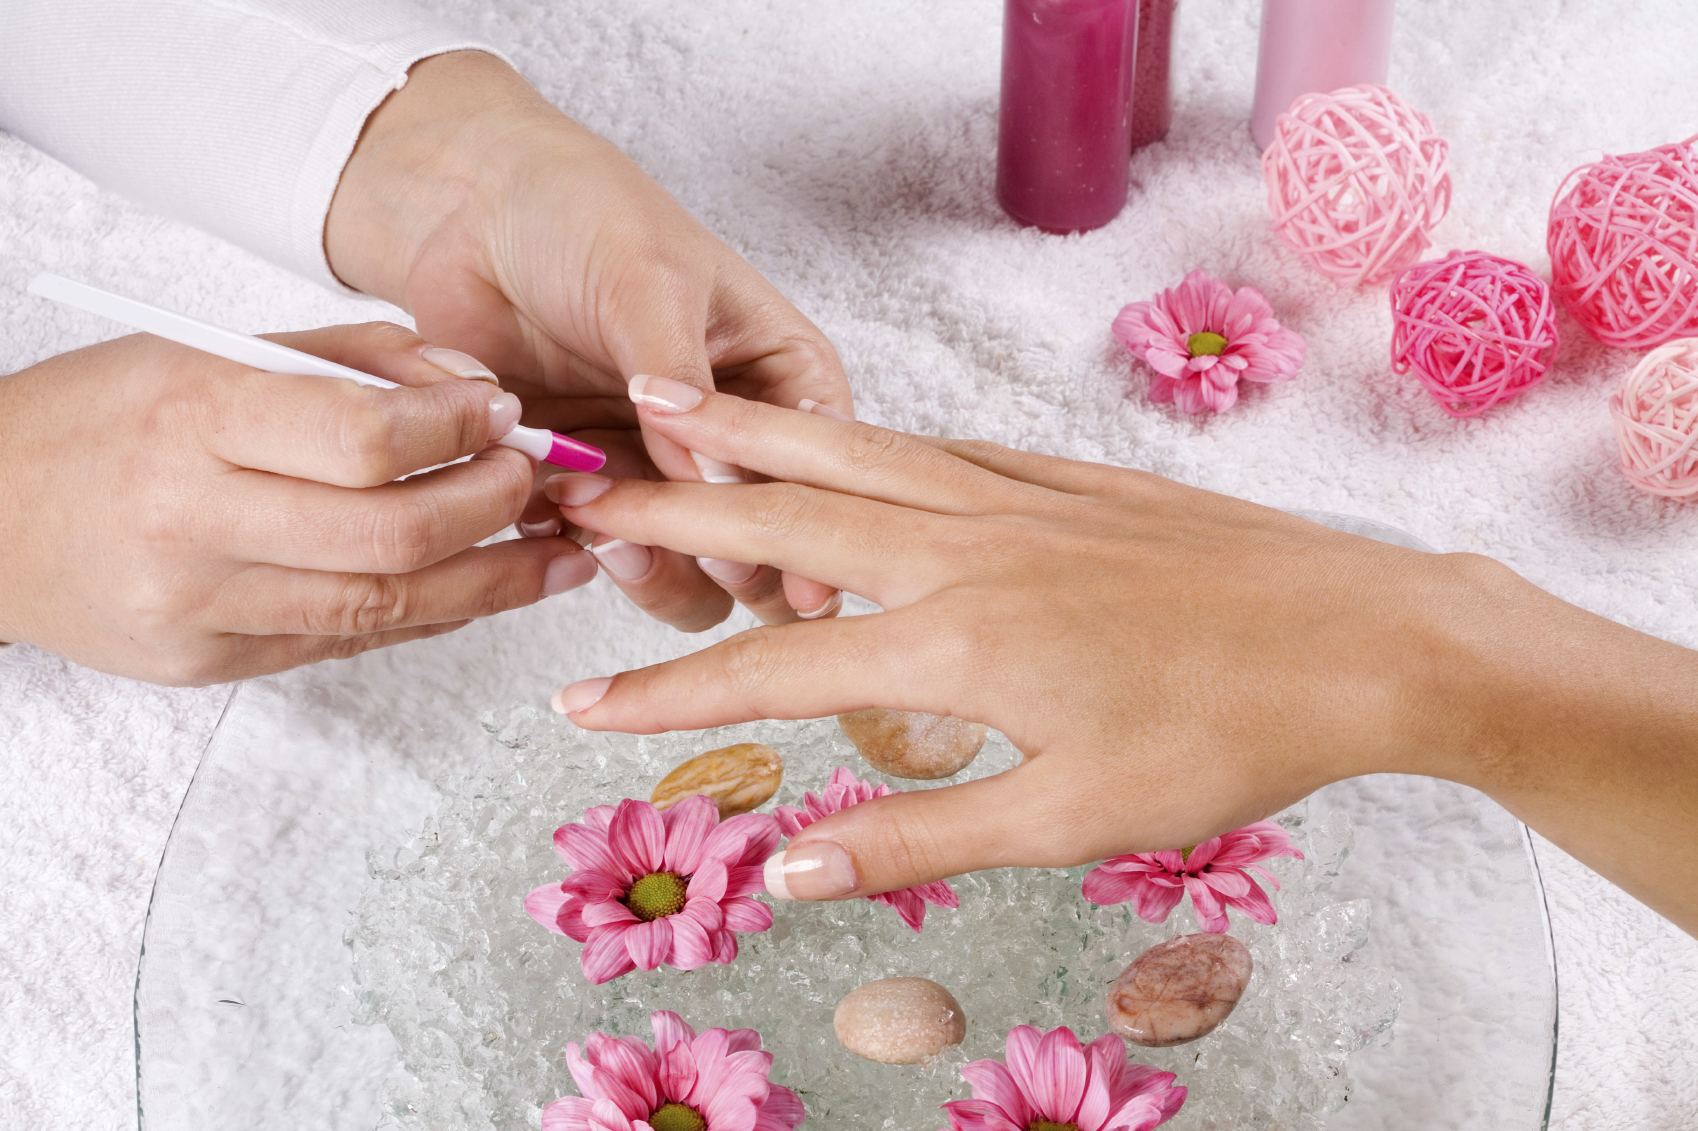 14-day chip free manicure with revolutionary product offered at adora